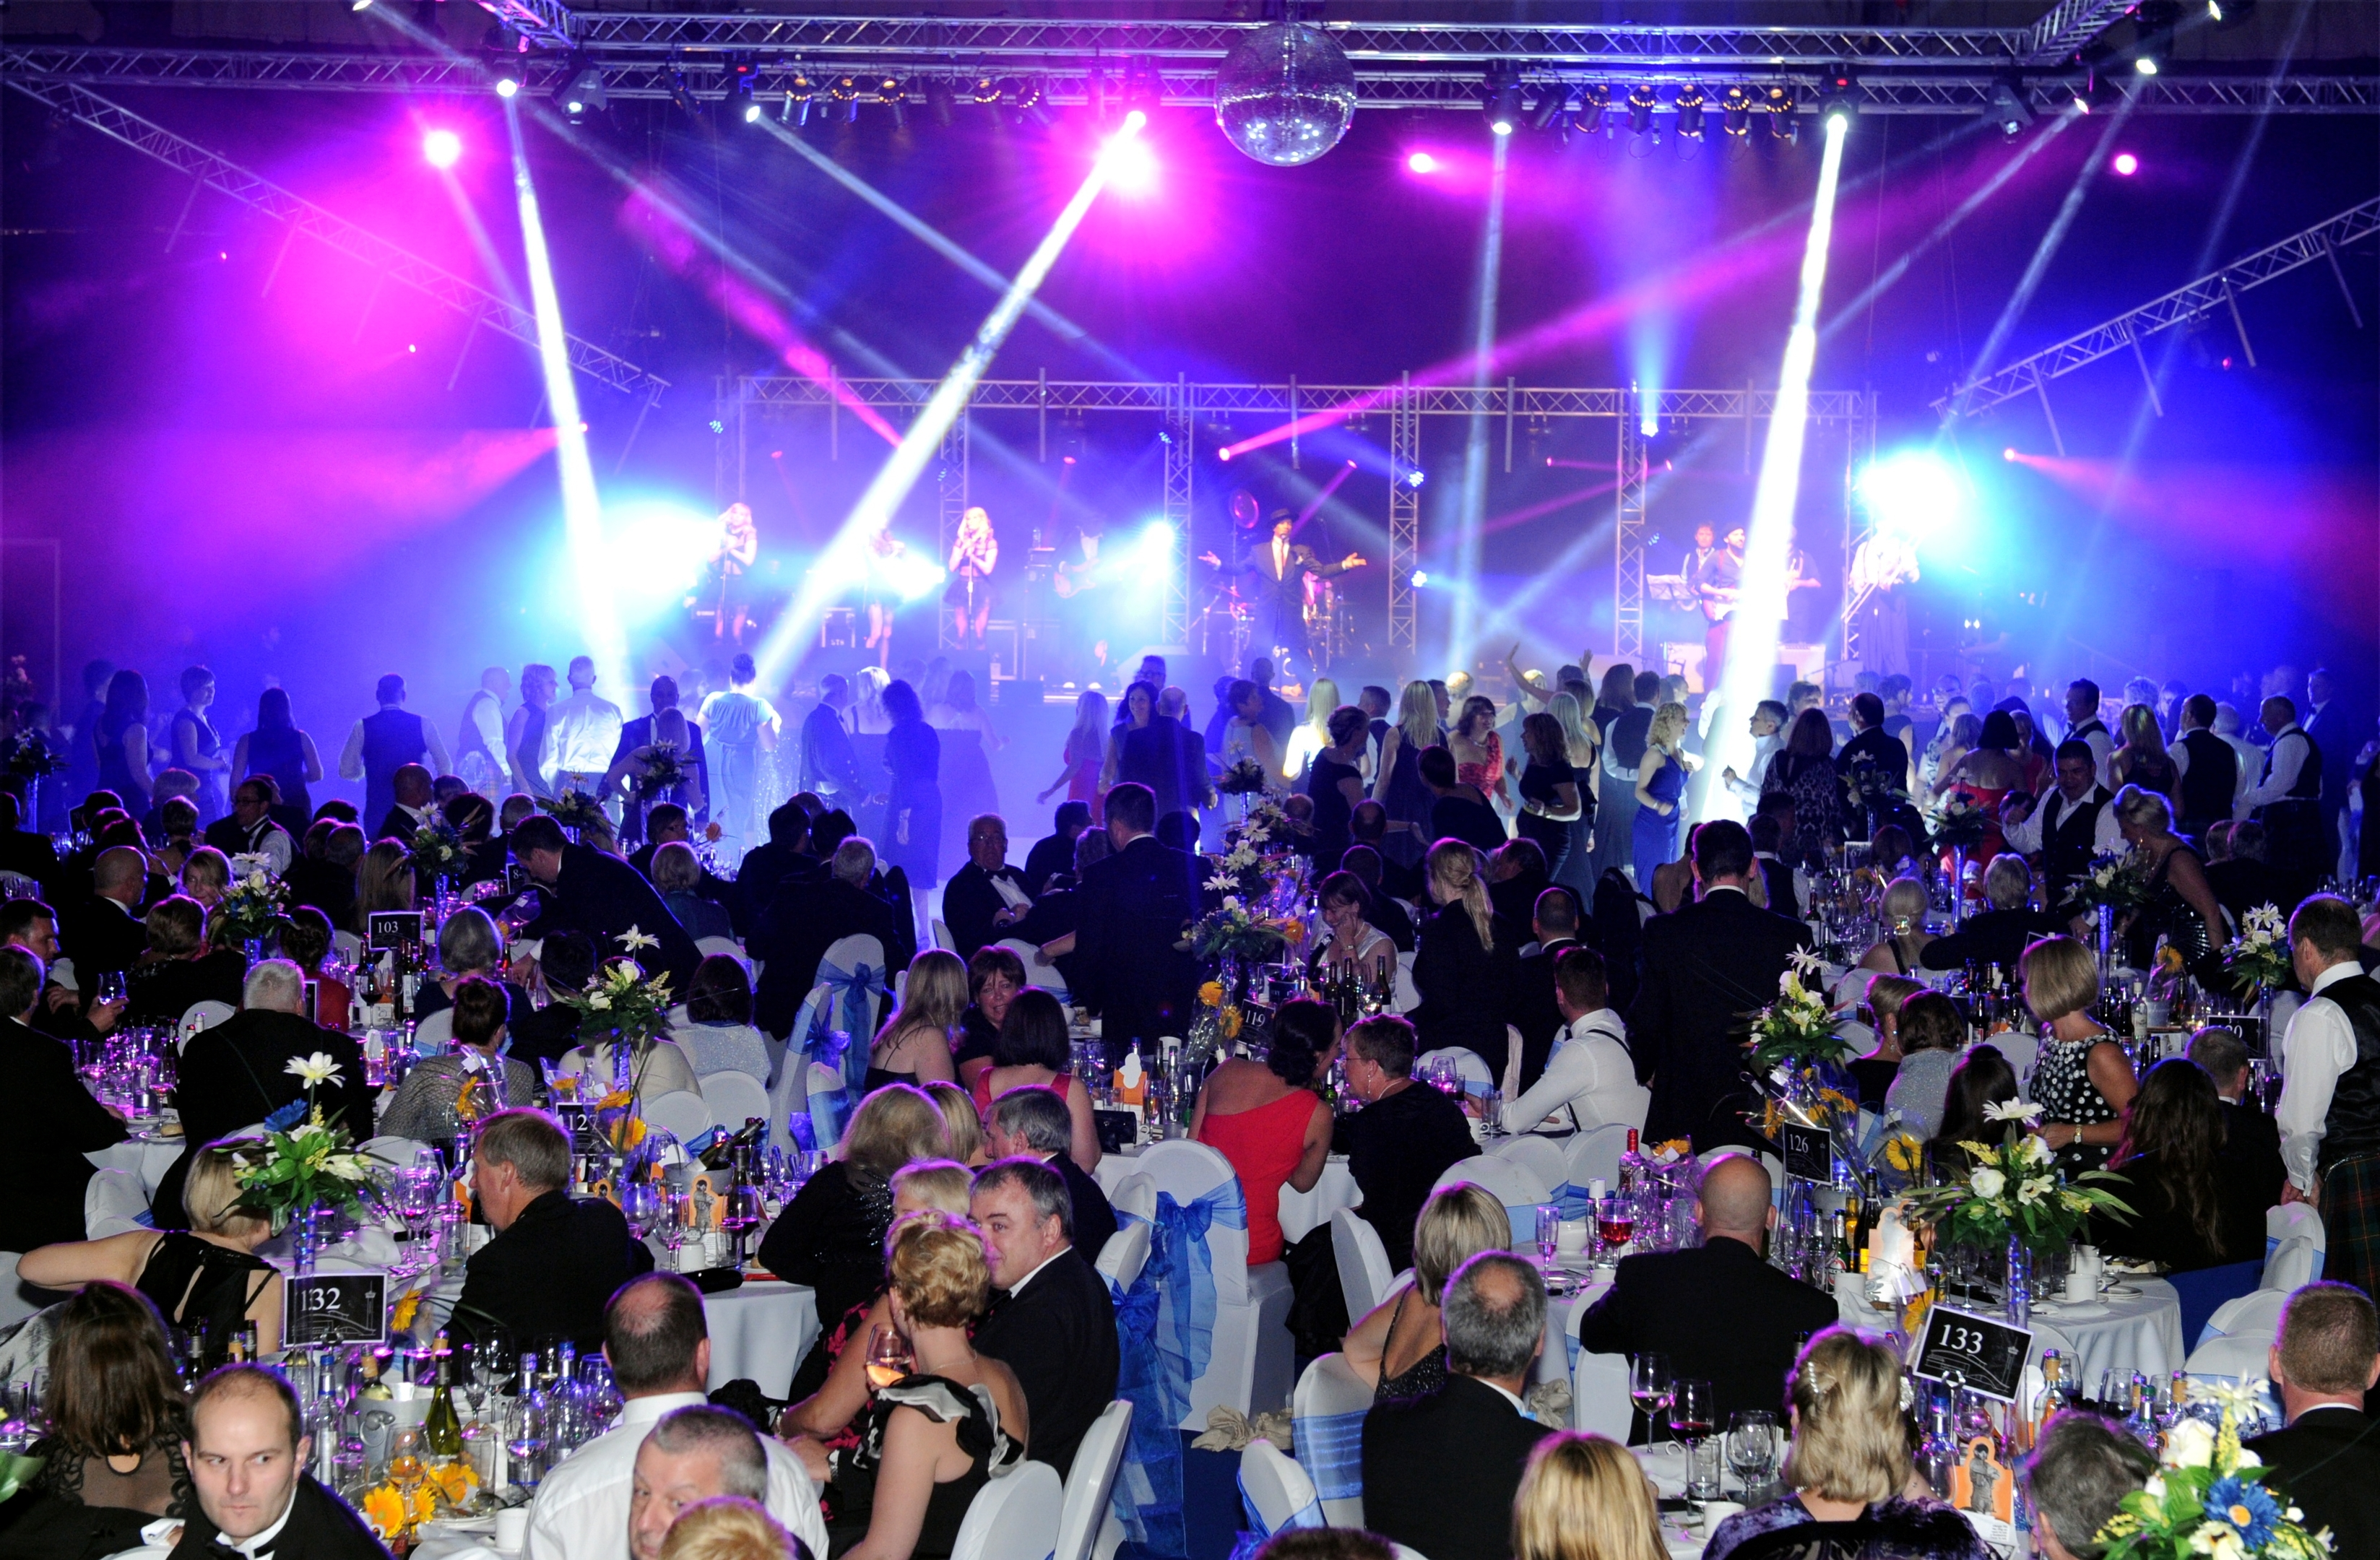 The Press and Journal Energy Ball